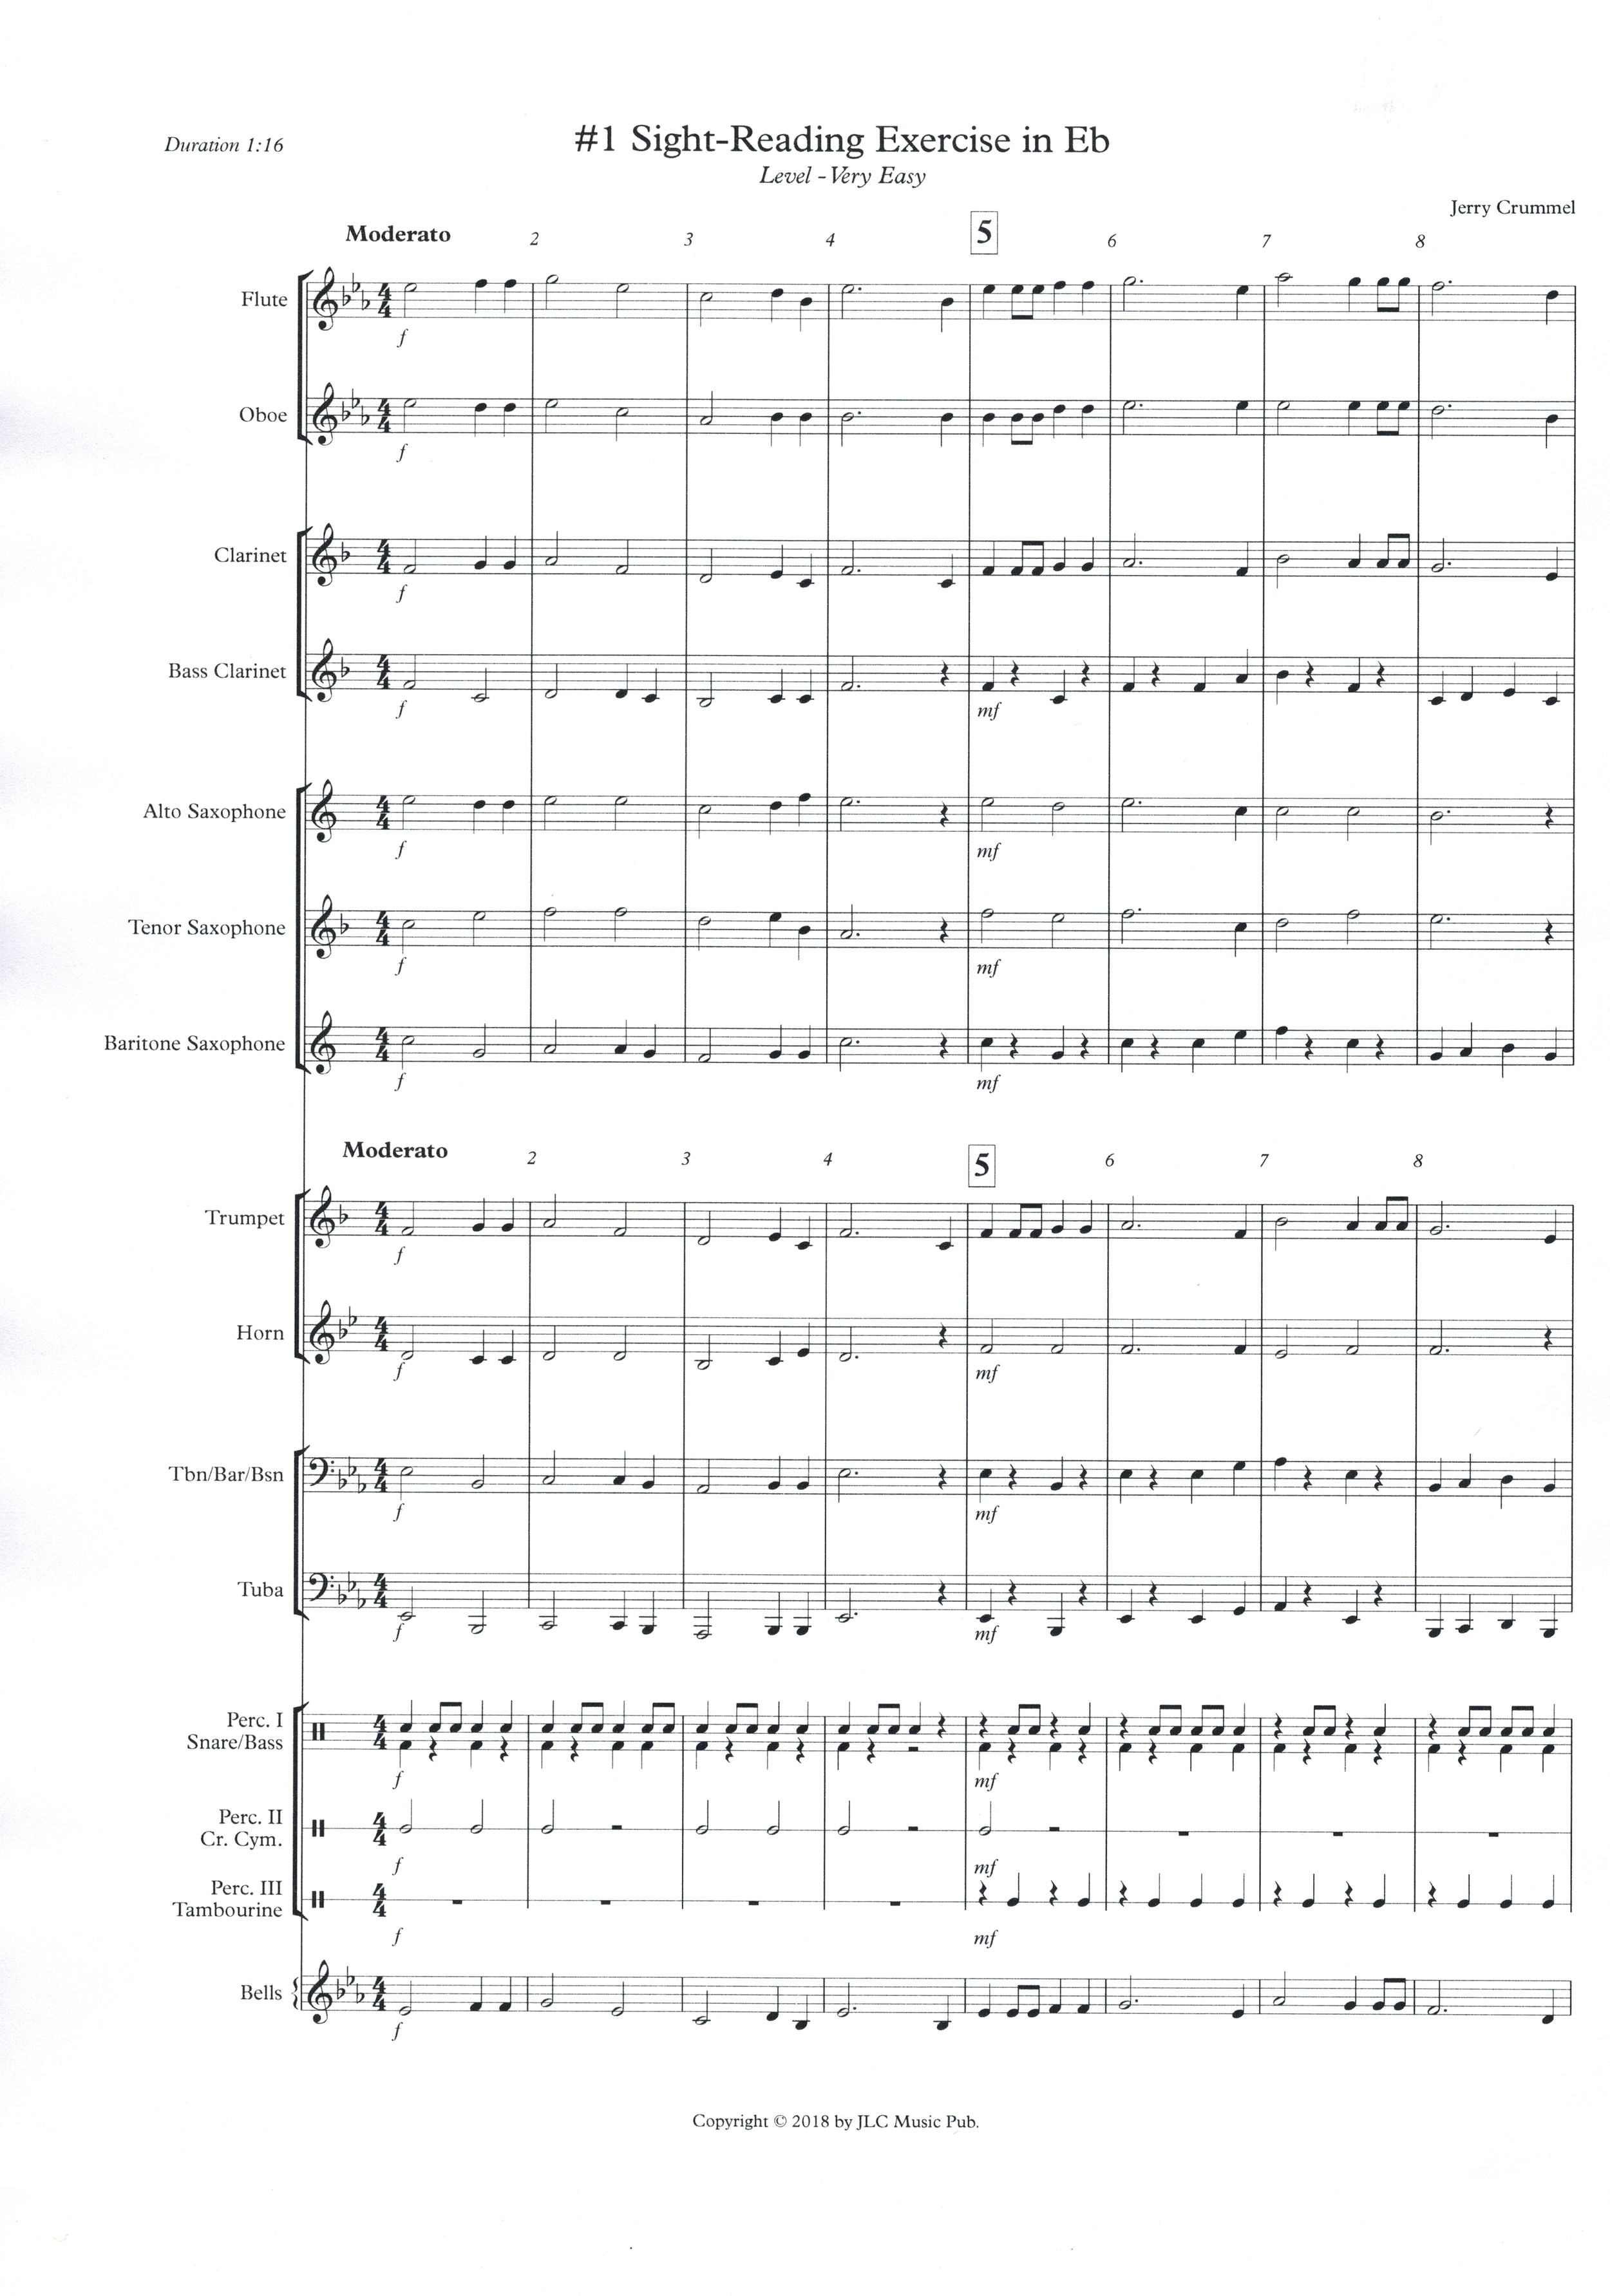 #1 Sight-Reading Exercise in Eb02132019.png